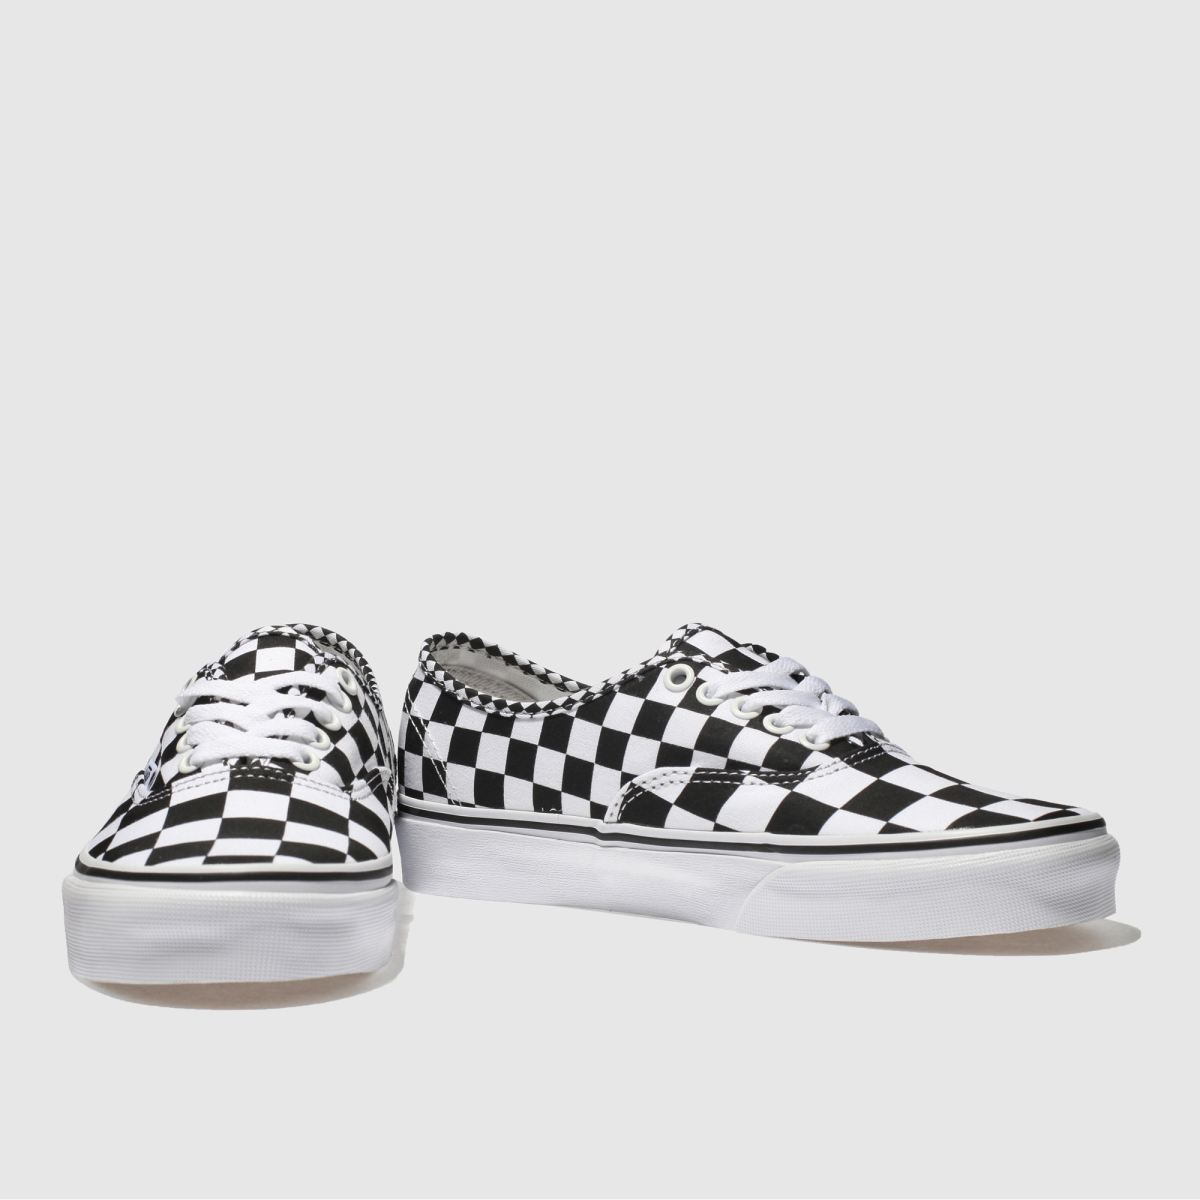 Herren Weiß-schwarz Gute vans Authentic Mix Checker Sneaker | schuh Gute Weiß-schwarz Qualität beliebte Schuhe 73be13